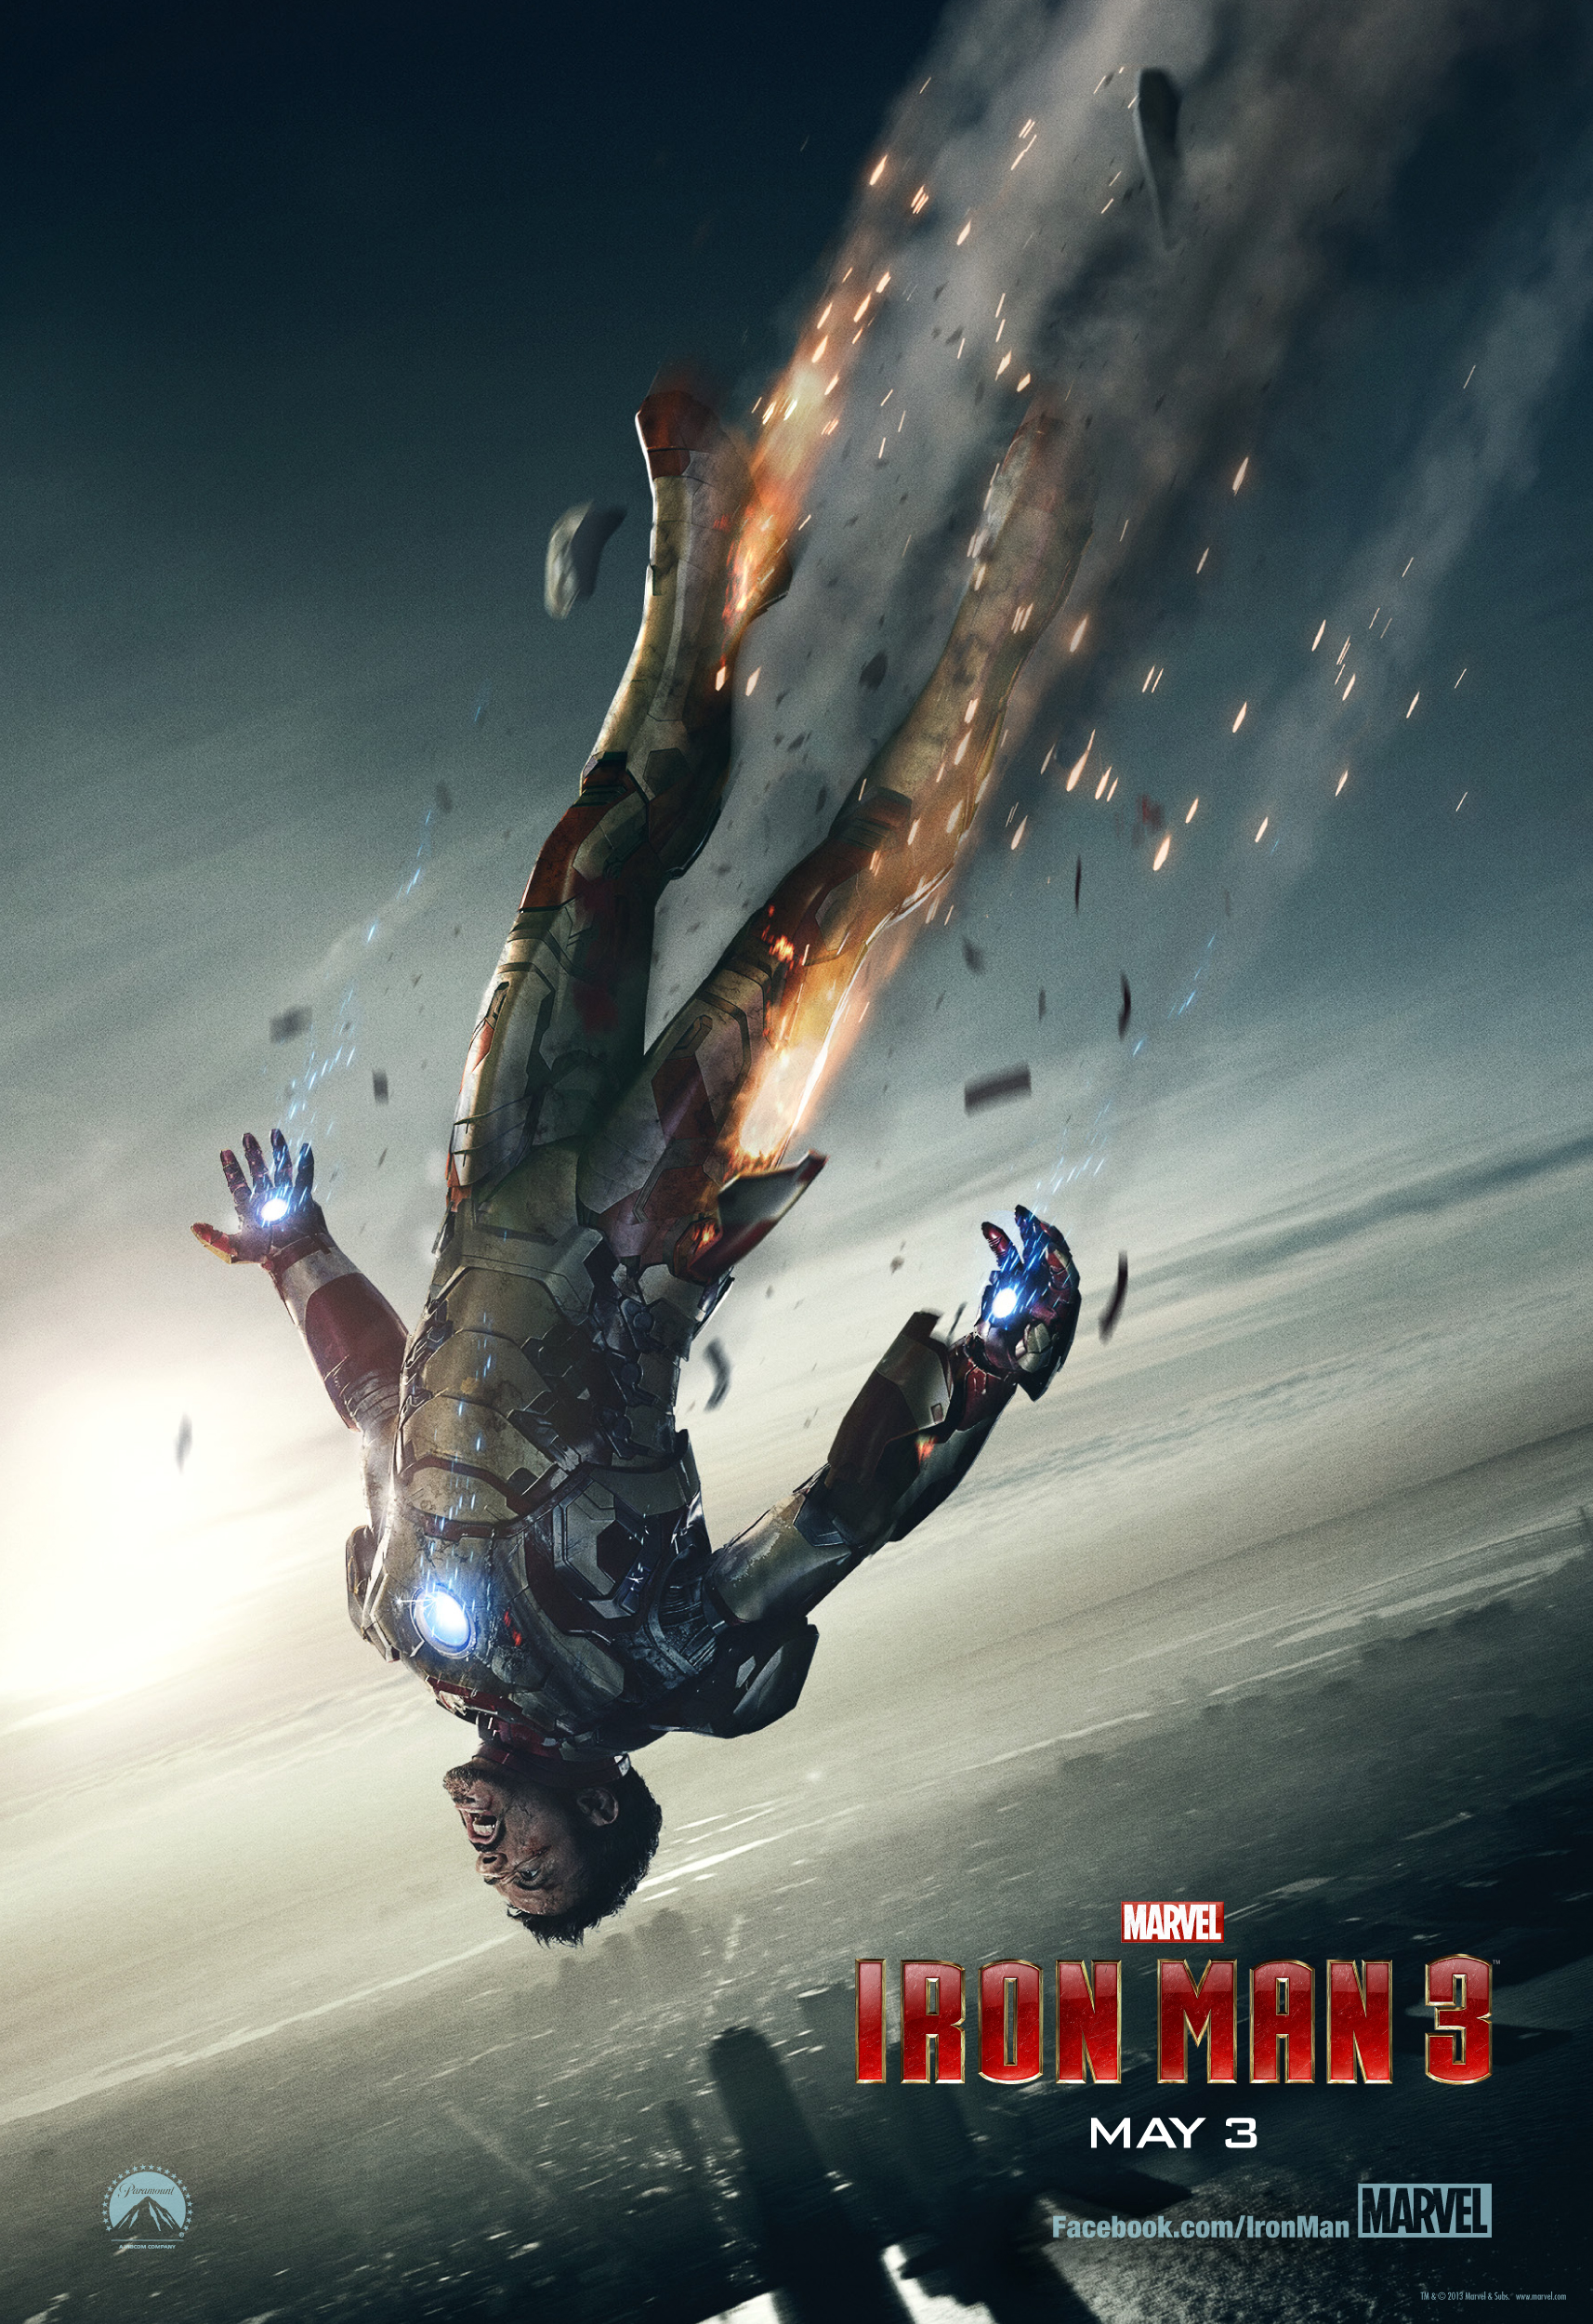 IRON MAN 3' Super Bowl Teaser